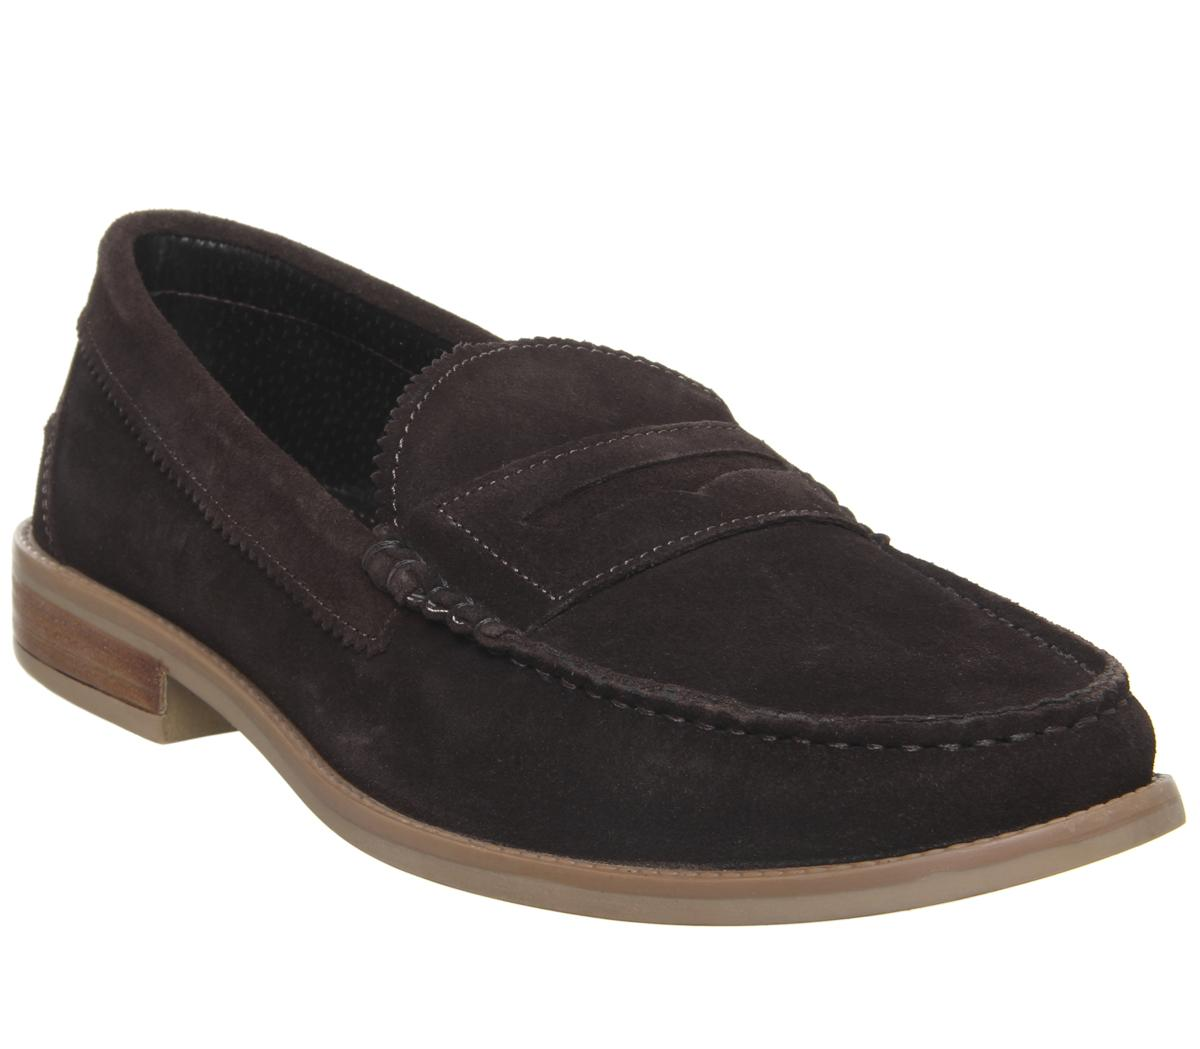 Liho Penny Loafers